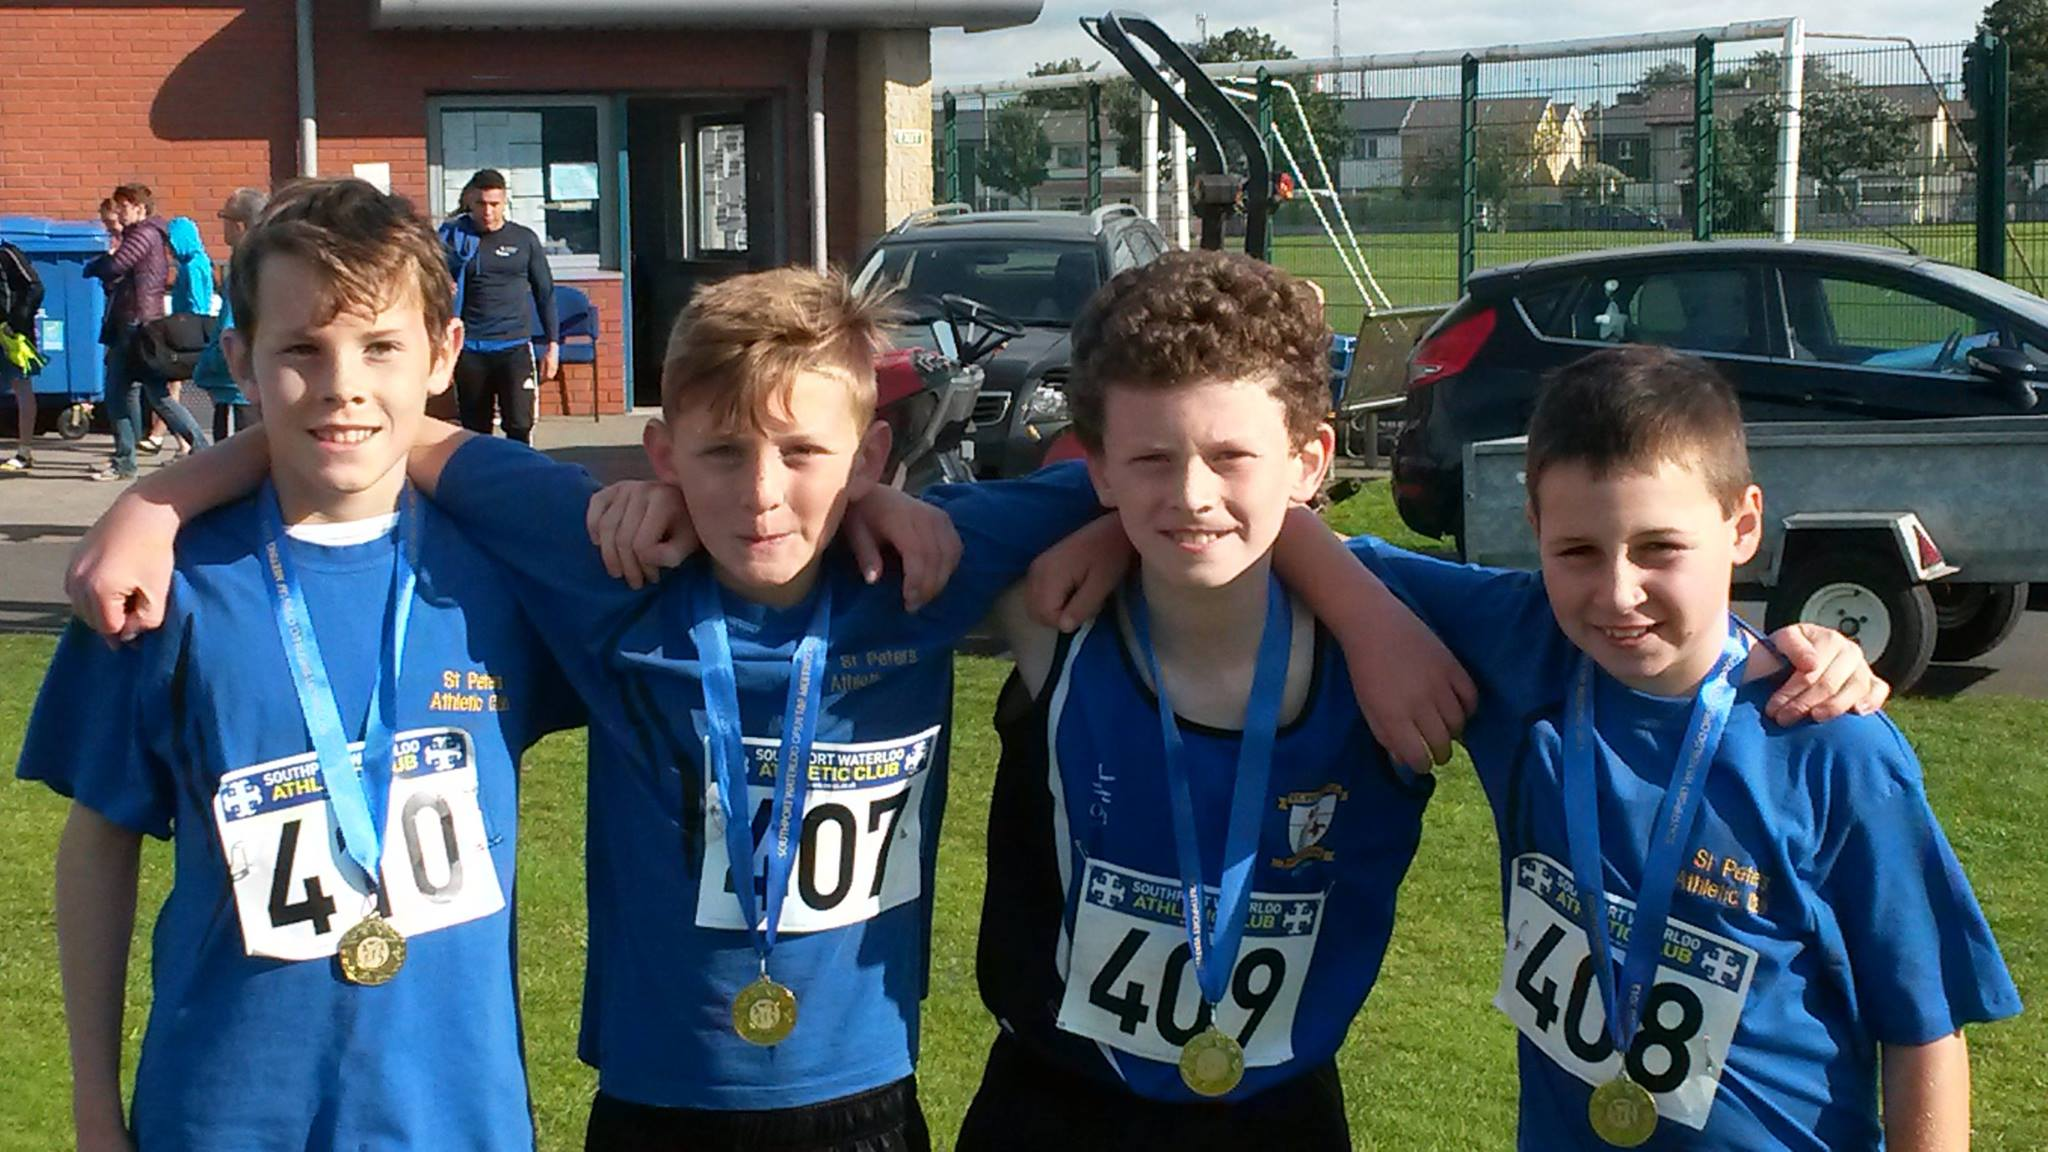 St Peter's AC U13 Boys' 4x100m team at Southport Waterloo AC Open Meet (Liverpool, September 2015)